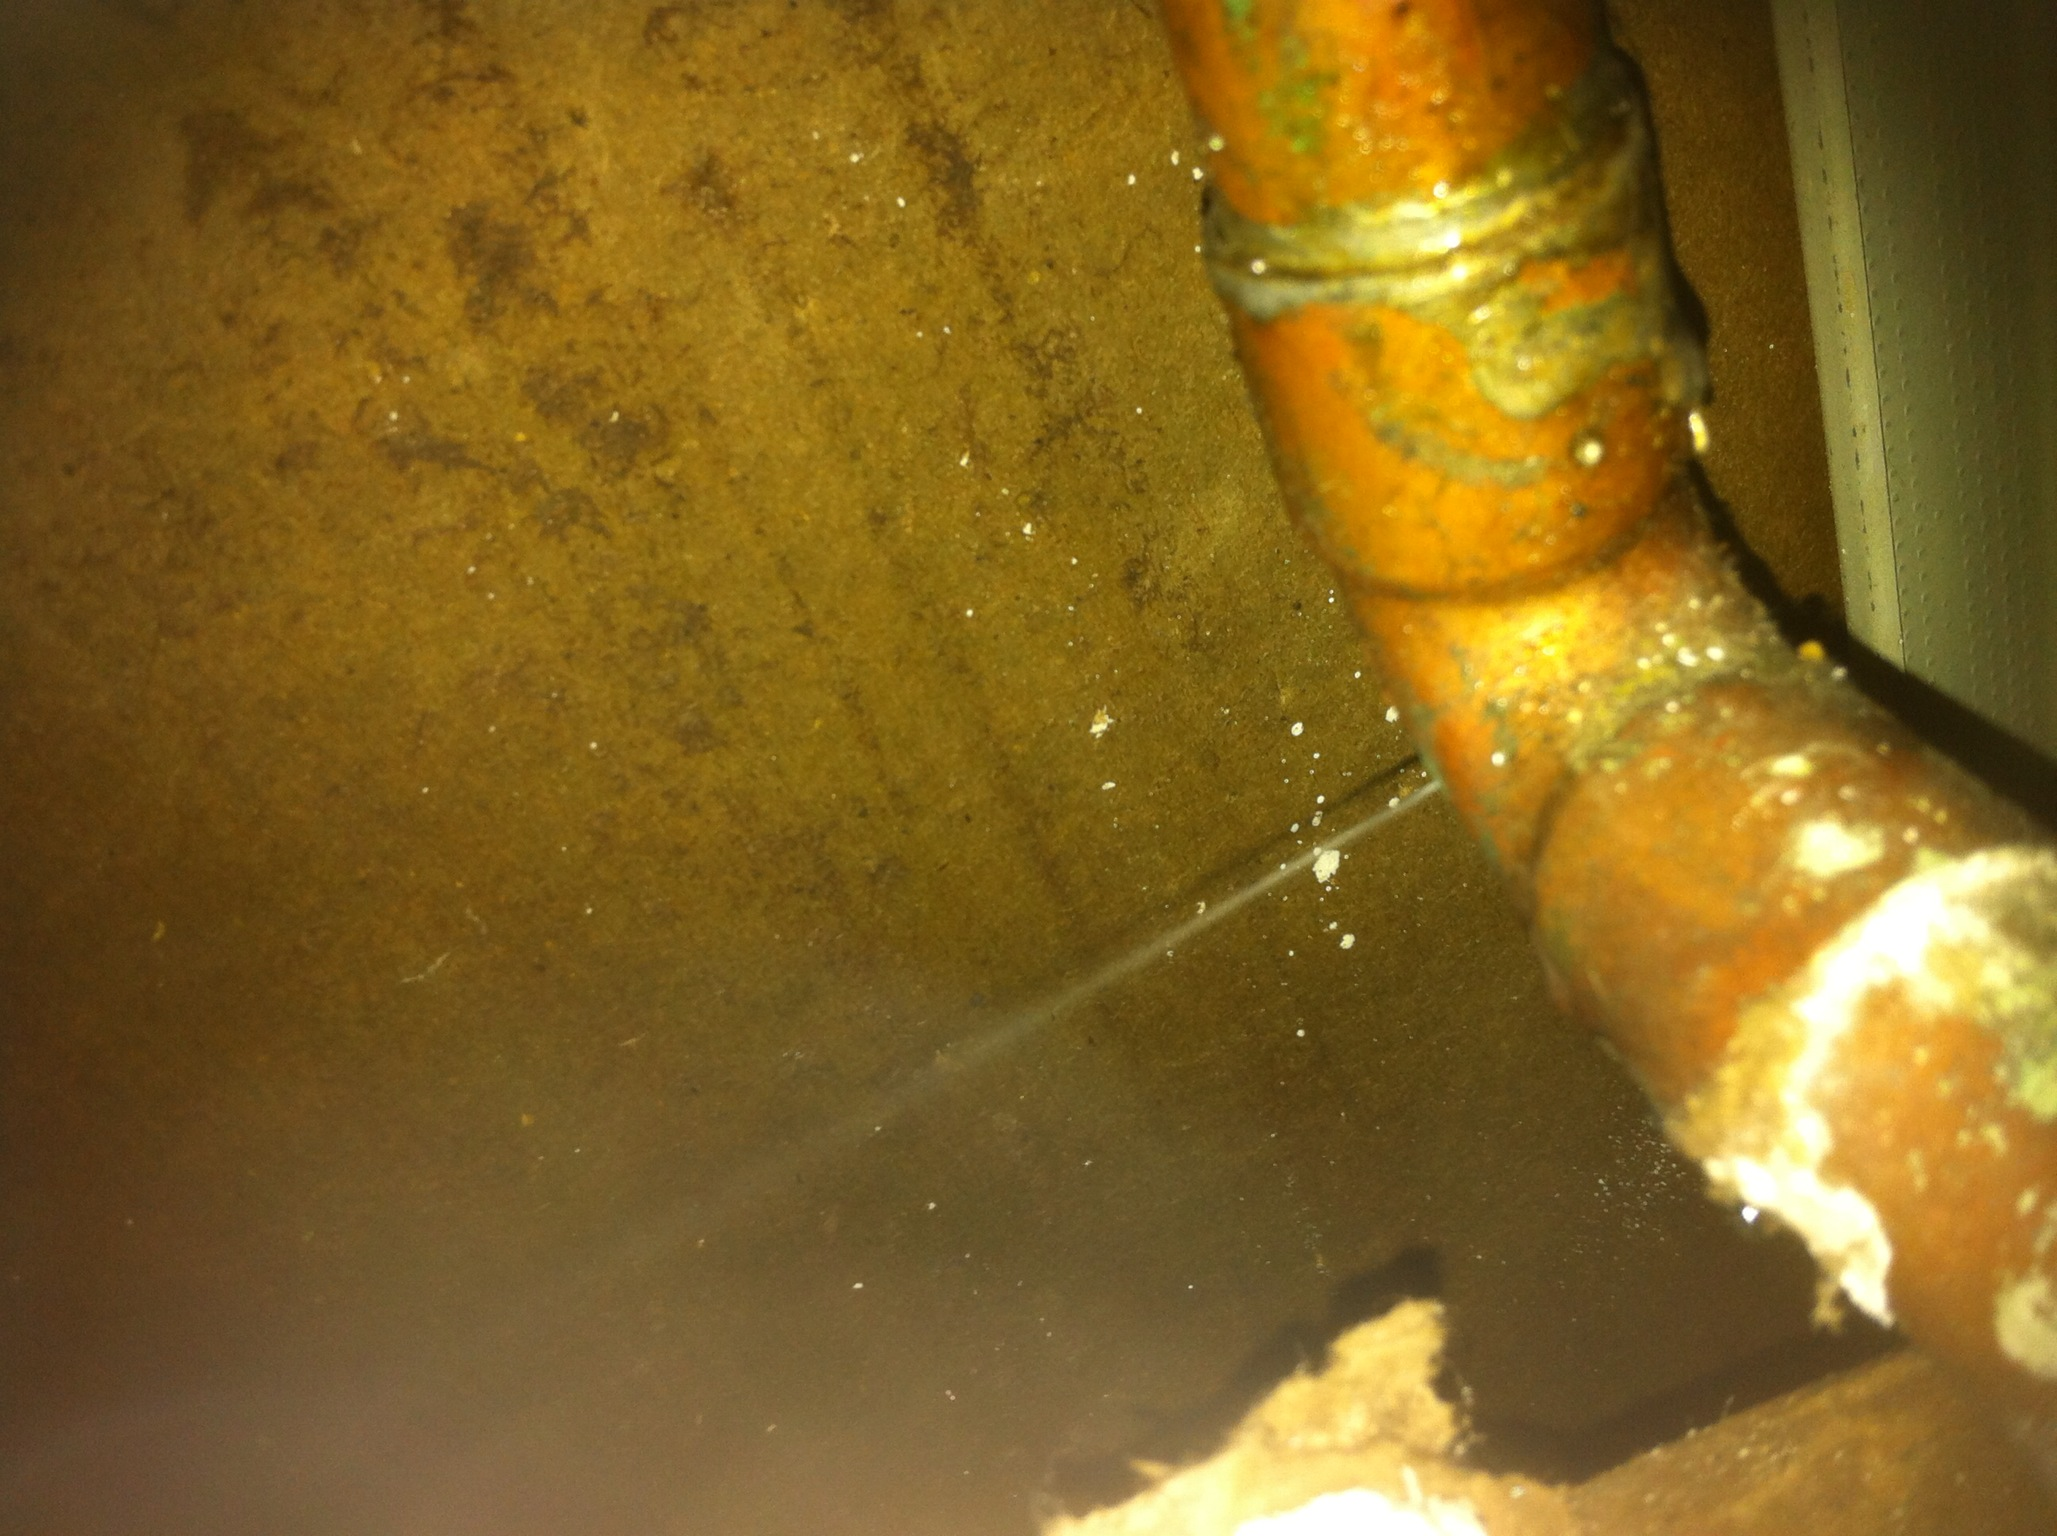 Broken copper pipe leaking